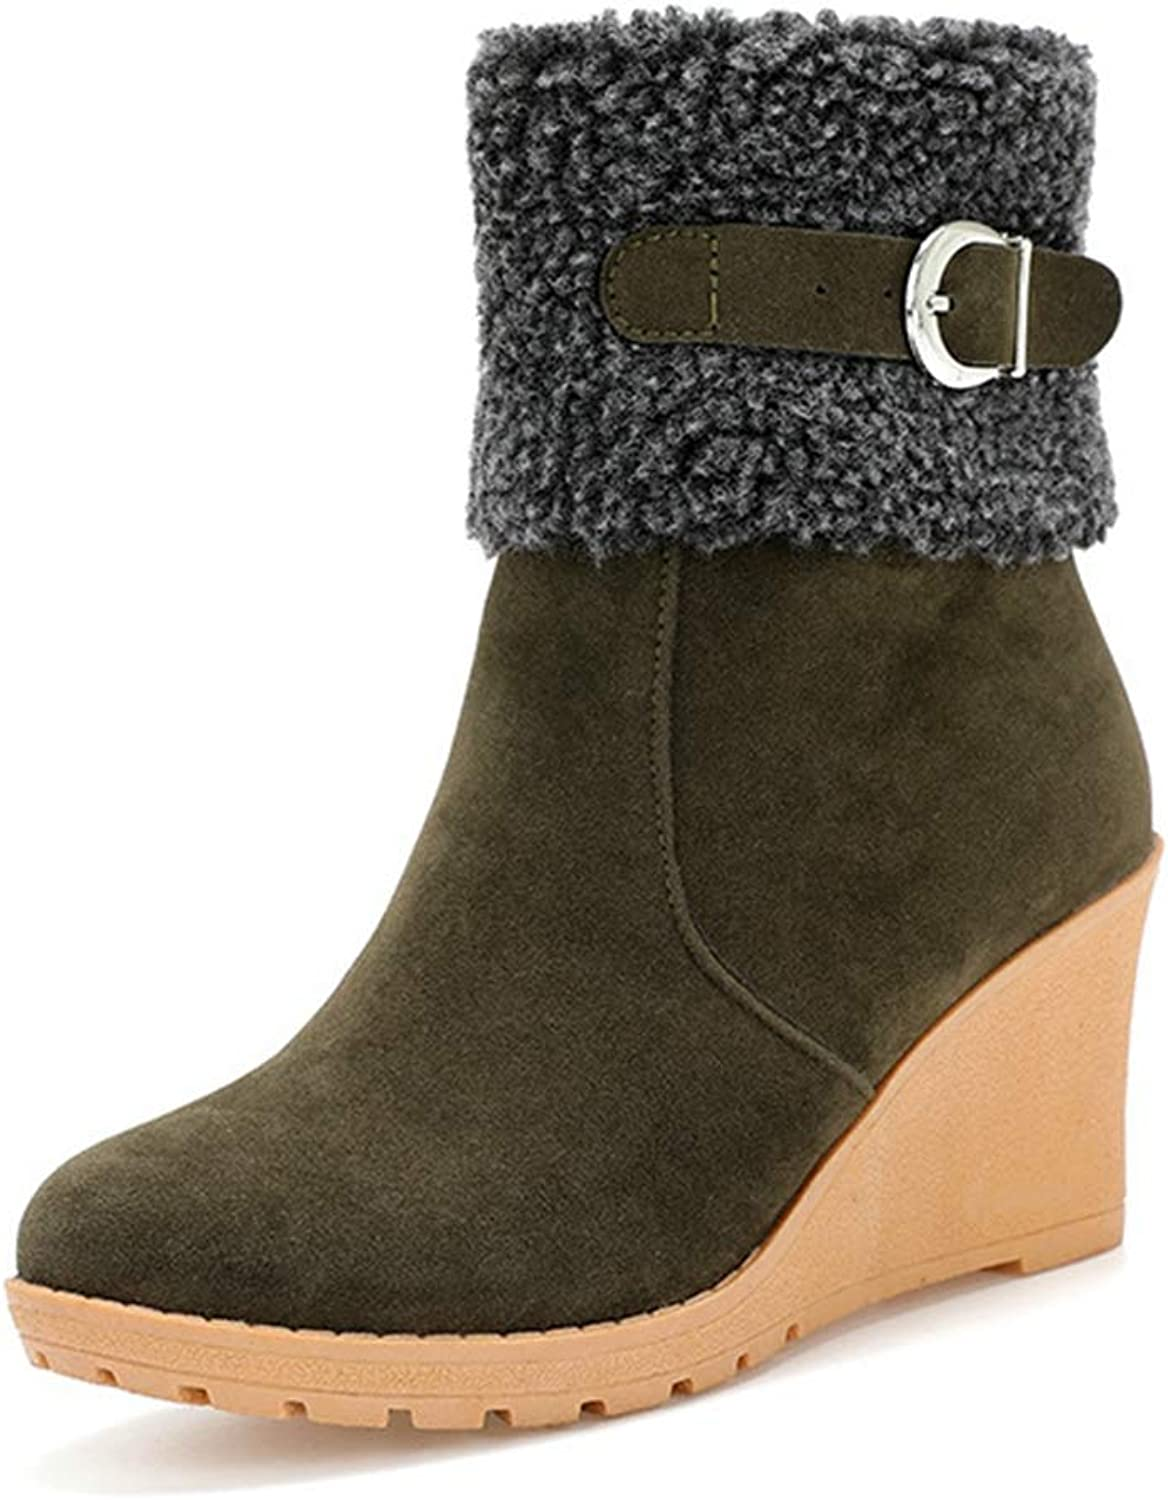 CYBLING Women's Faux Suede Wedge Heel Mid-Calf Boots Outdoor Warm Fur Lined Ankle Short Booties